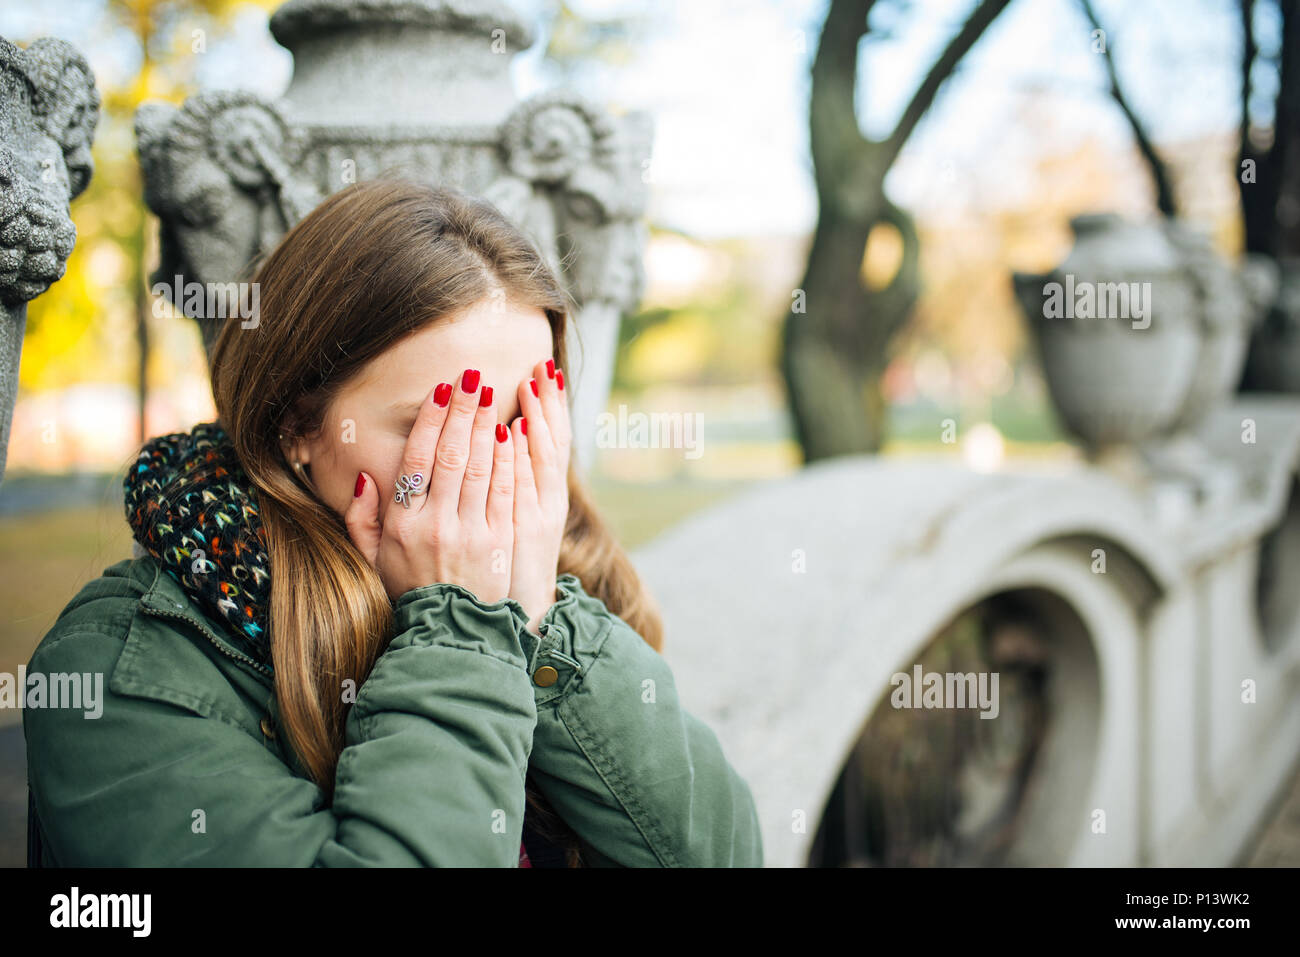 Young attractive woman with red nails covering her face with hands - Stock Image